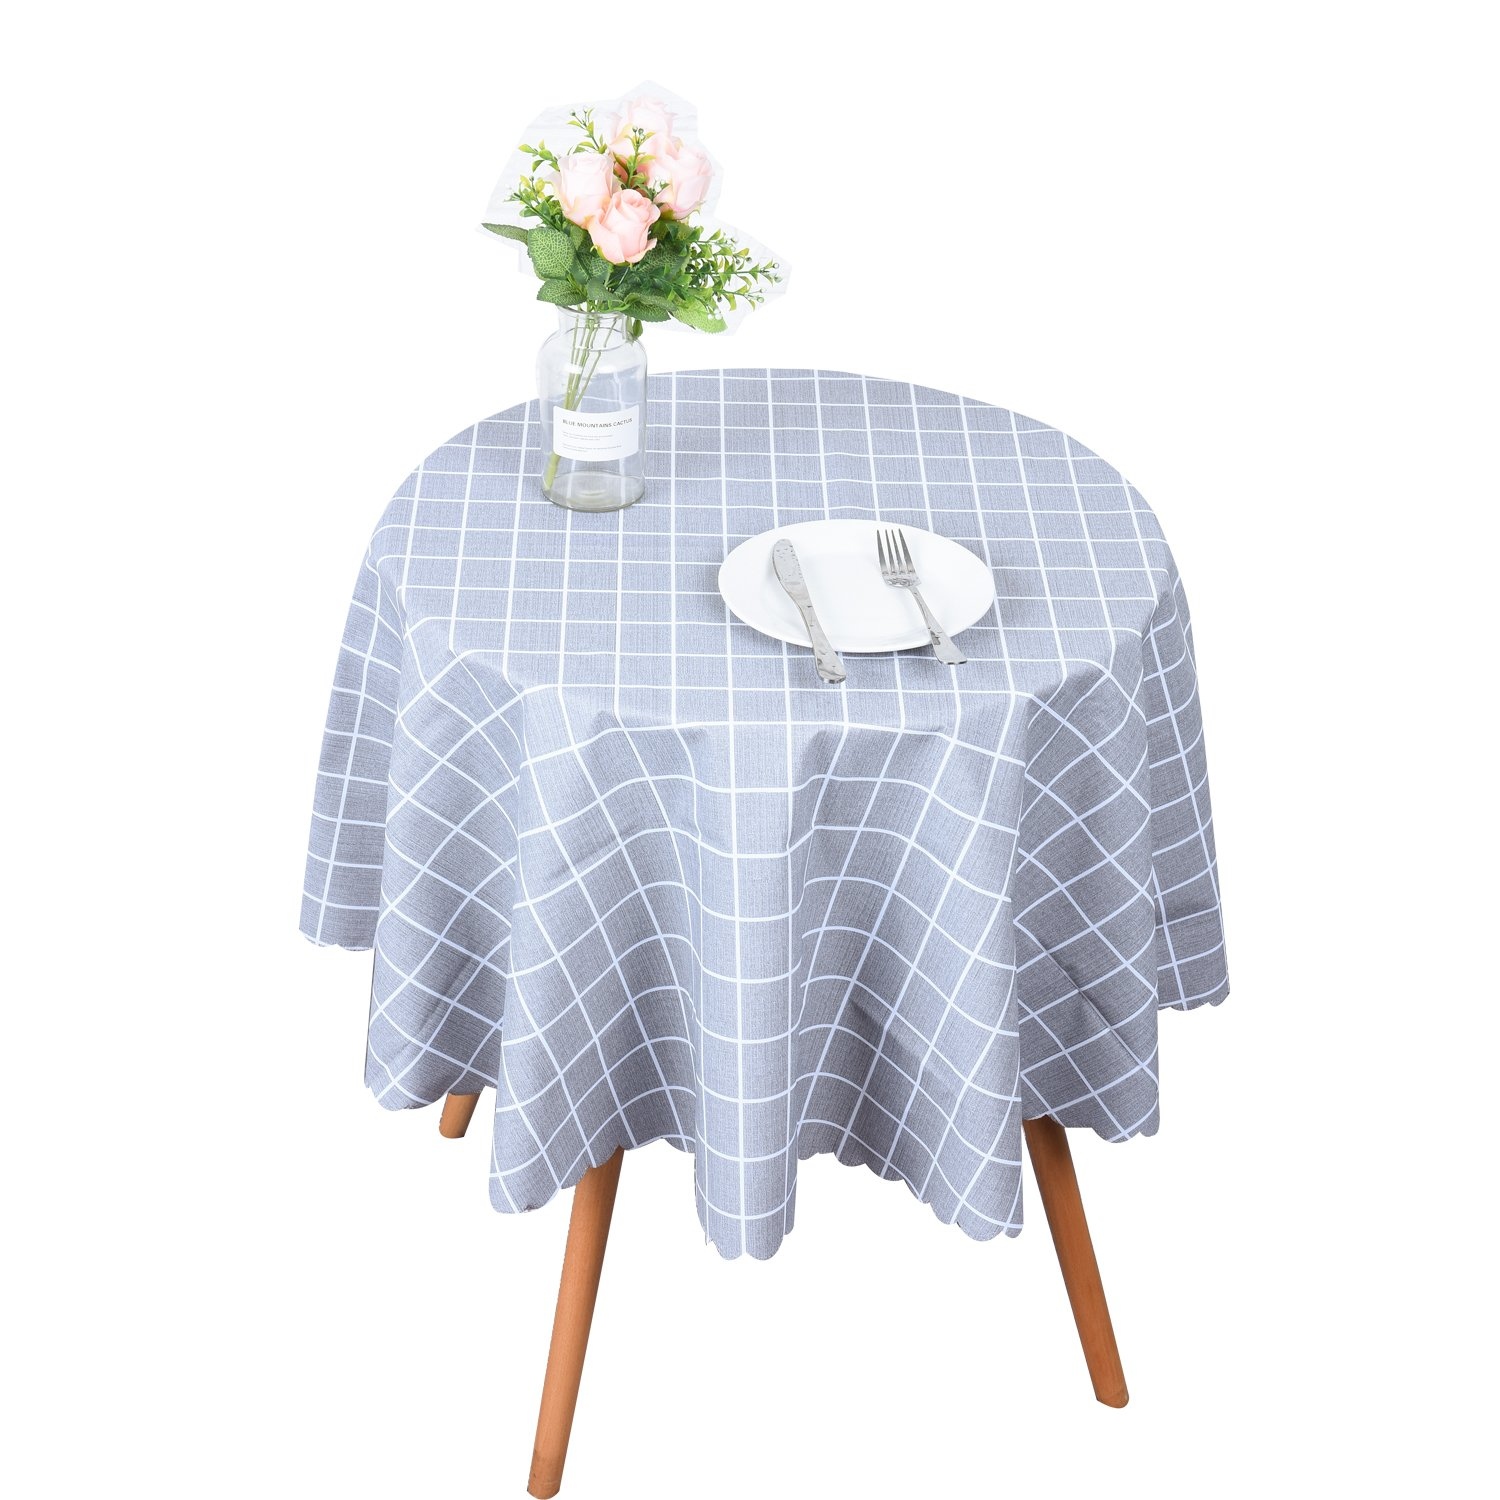 OUWIN 100% Waterproof Round Tablecloths Spill-Proof PVC Vinyl Table Protector Indoor Outdoor Picnic Table Cloths (54'' Round, Gray Checkered)